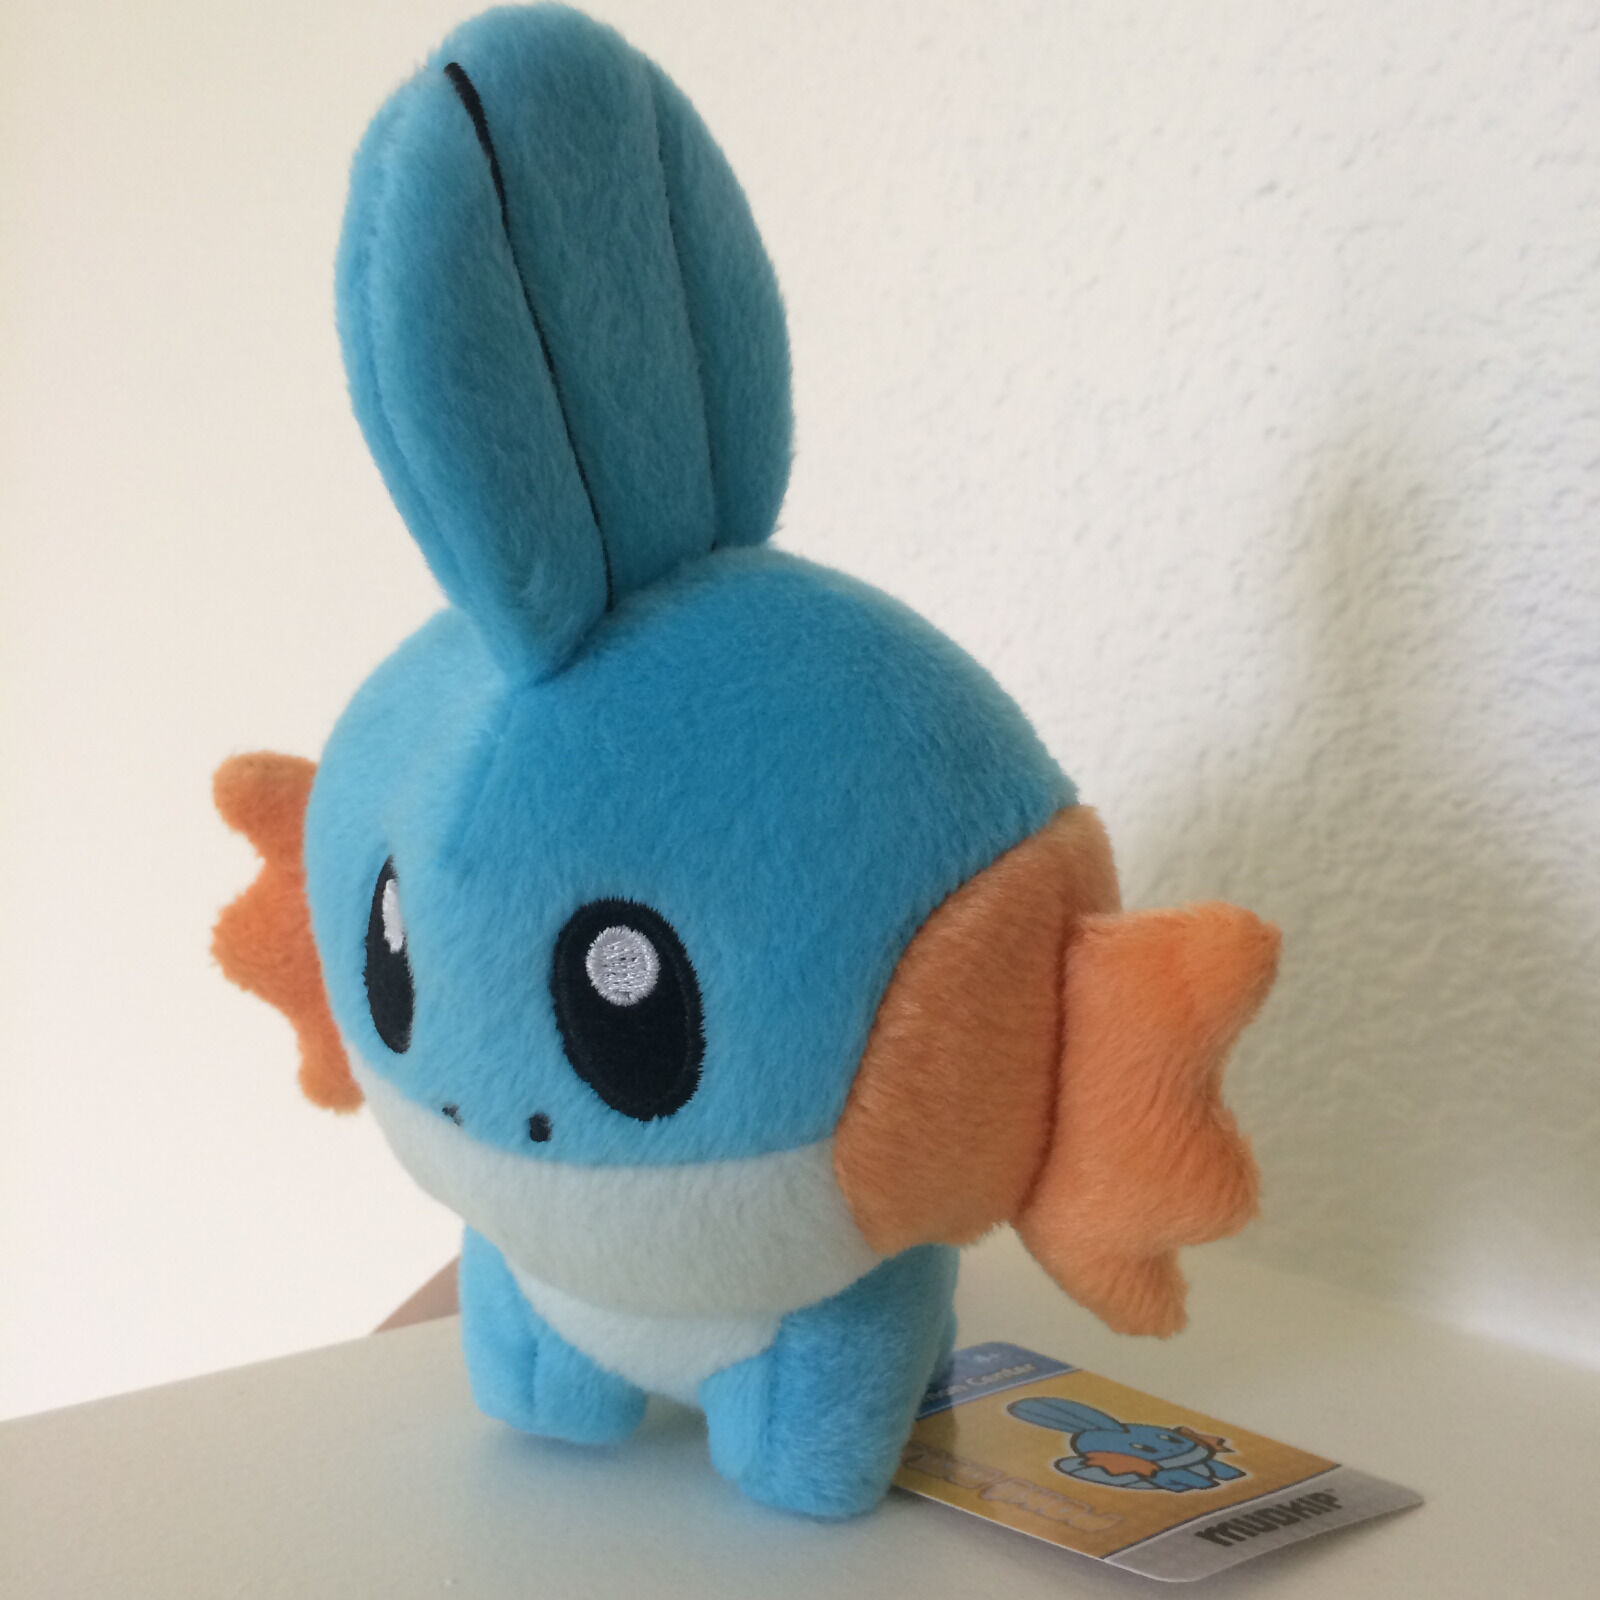 Mudkip Poke Doll 2010 Pokemon Figure Center USA Plush Figure Pokemon Stuffed Swampert Sceptile 77858a